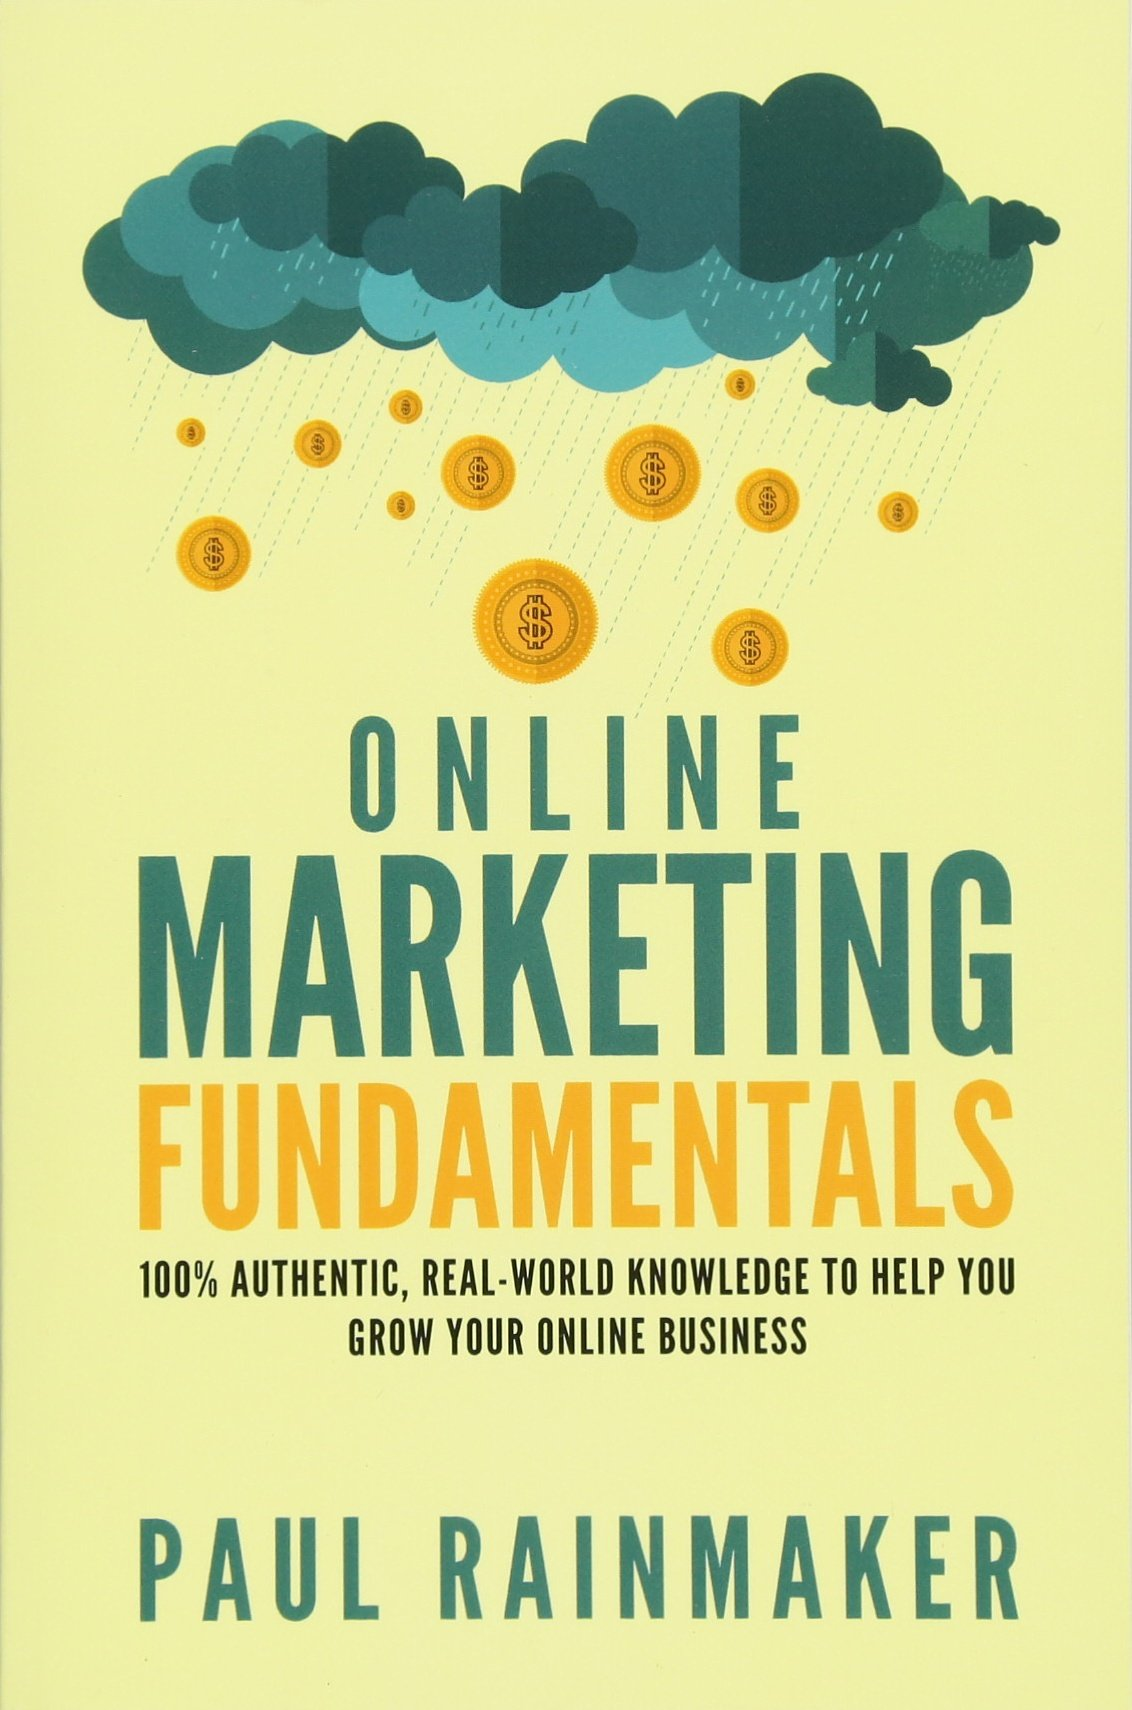 Download Online Marketing Fundamentals: 100% Authentic, Real-World Knowledge To Help You Grow Your Online Business. ebook